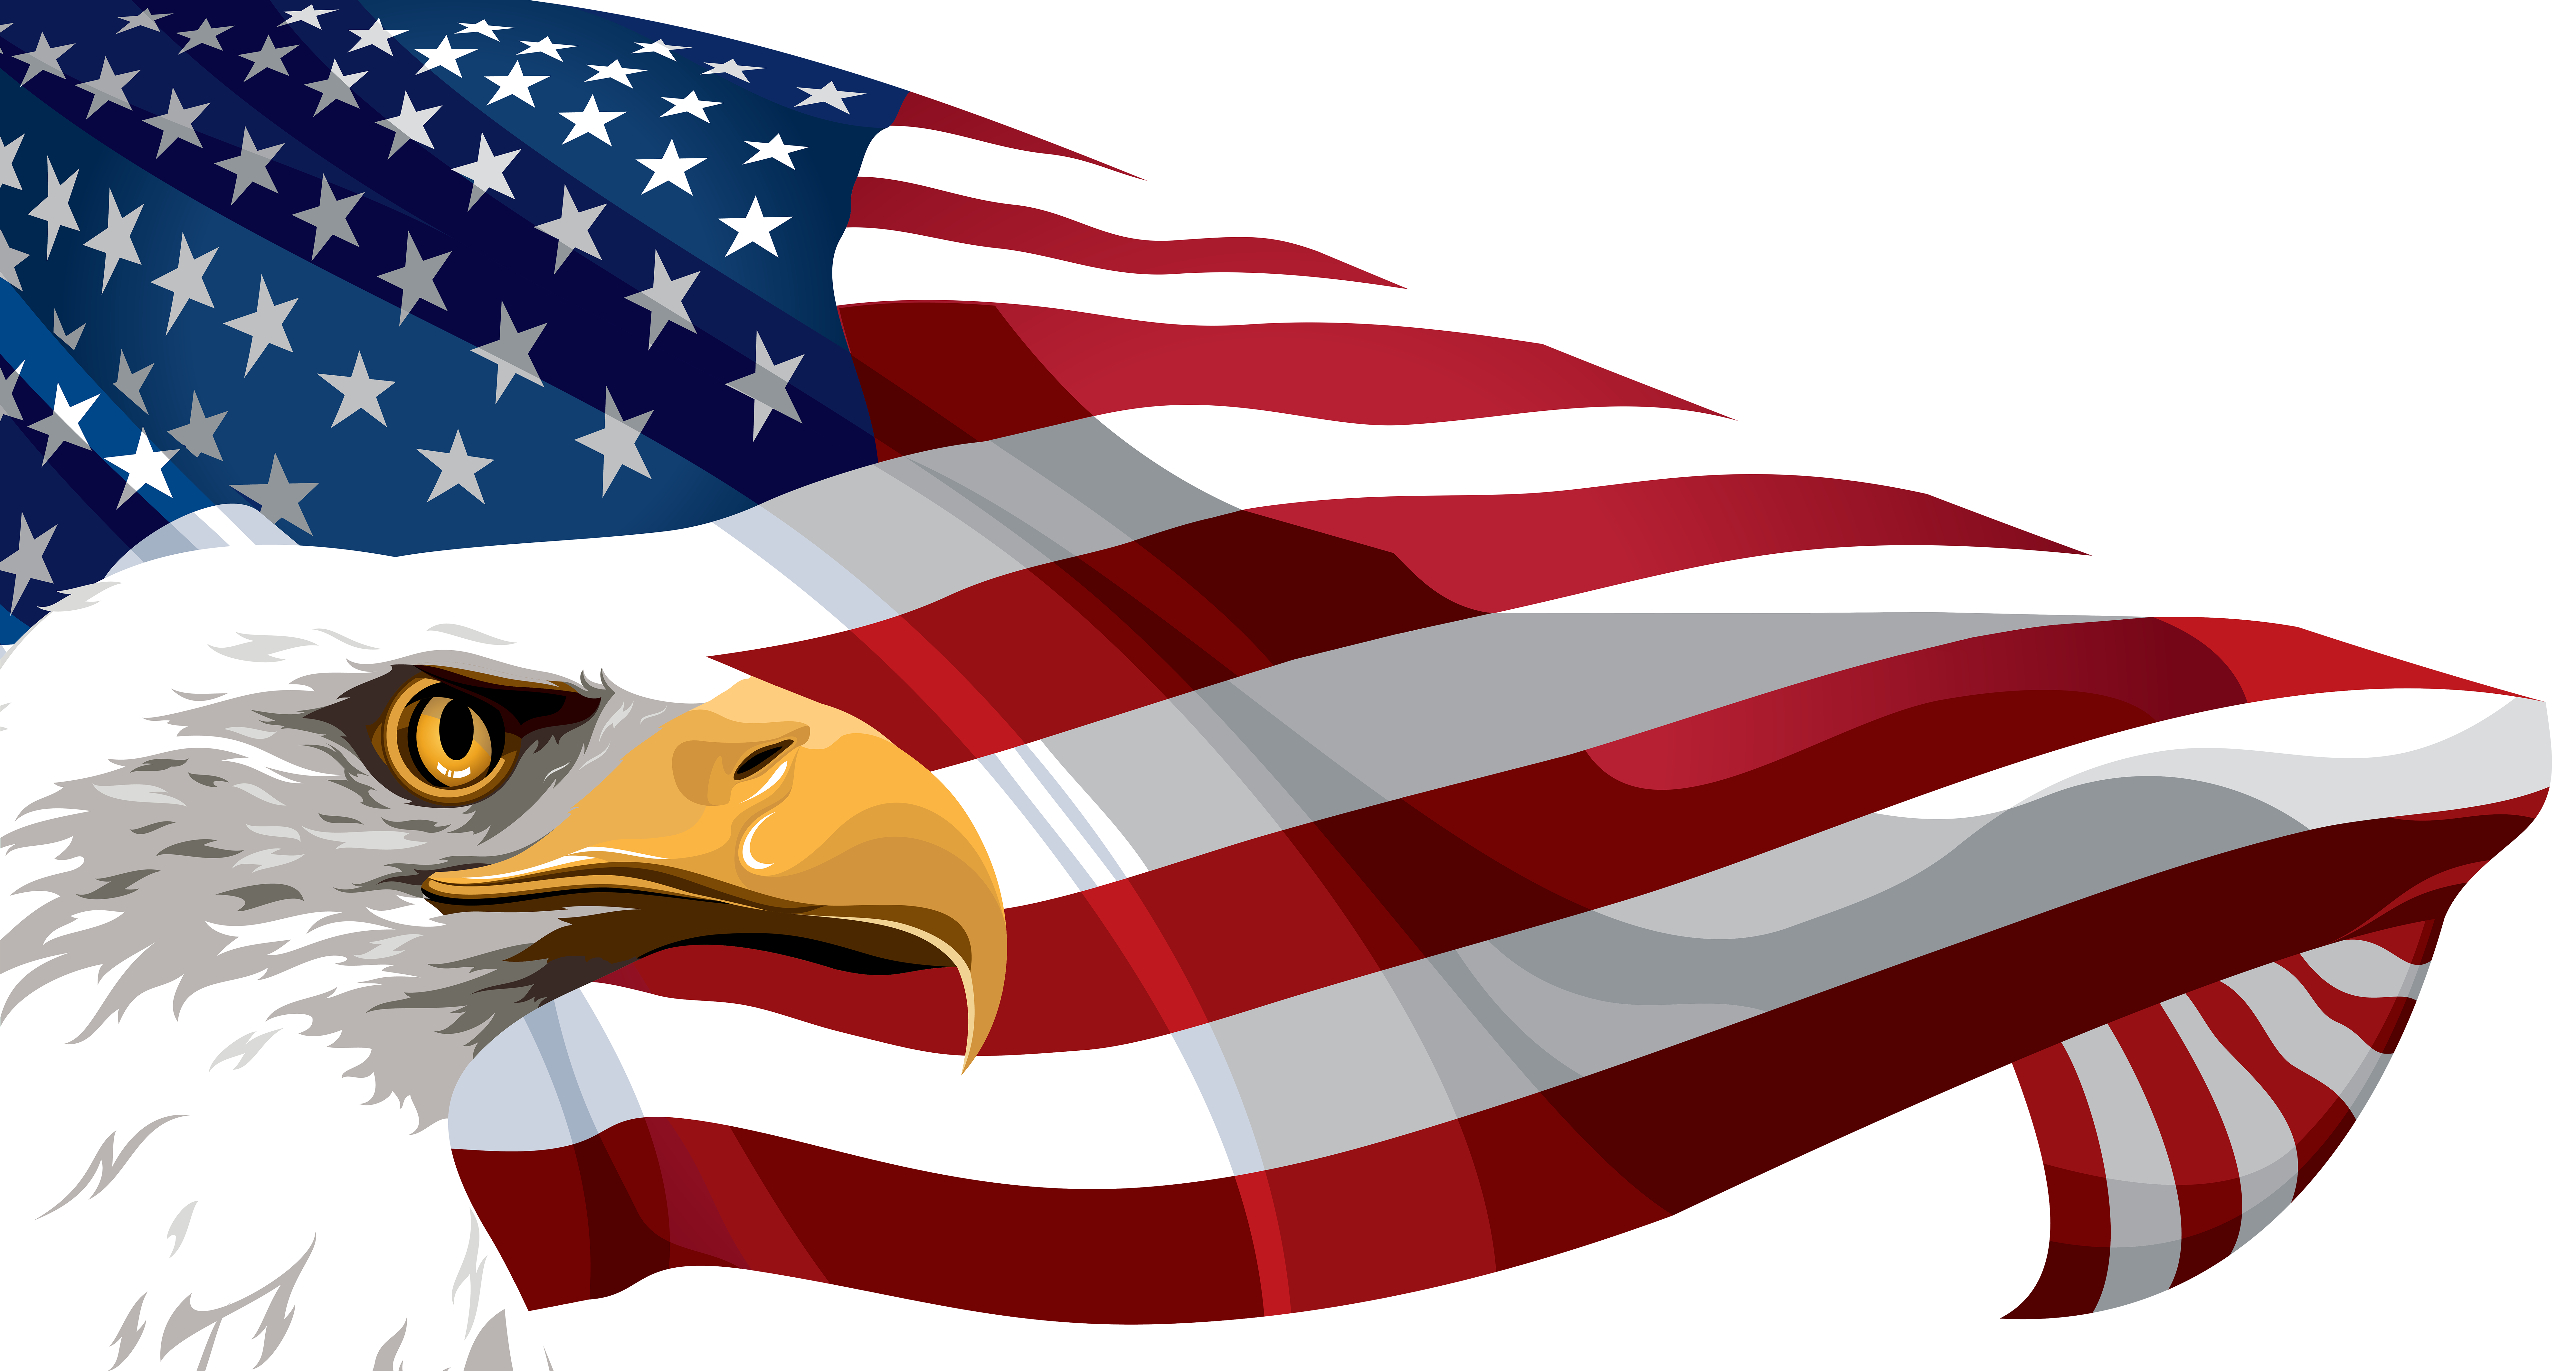 United states clipart background. American flag and eagle